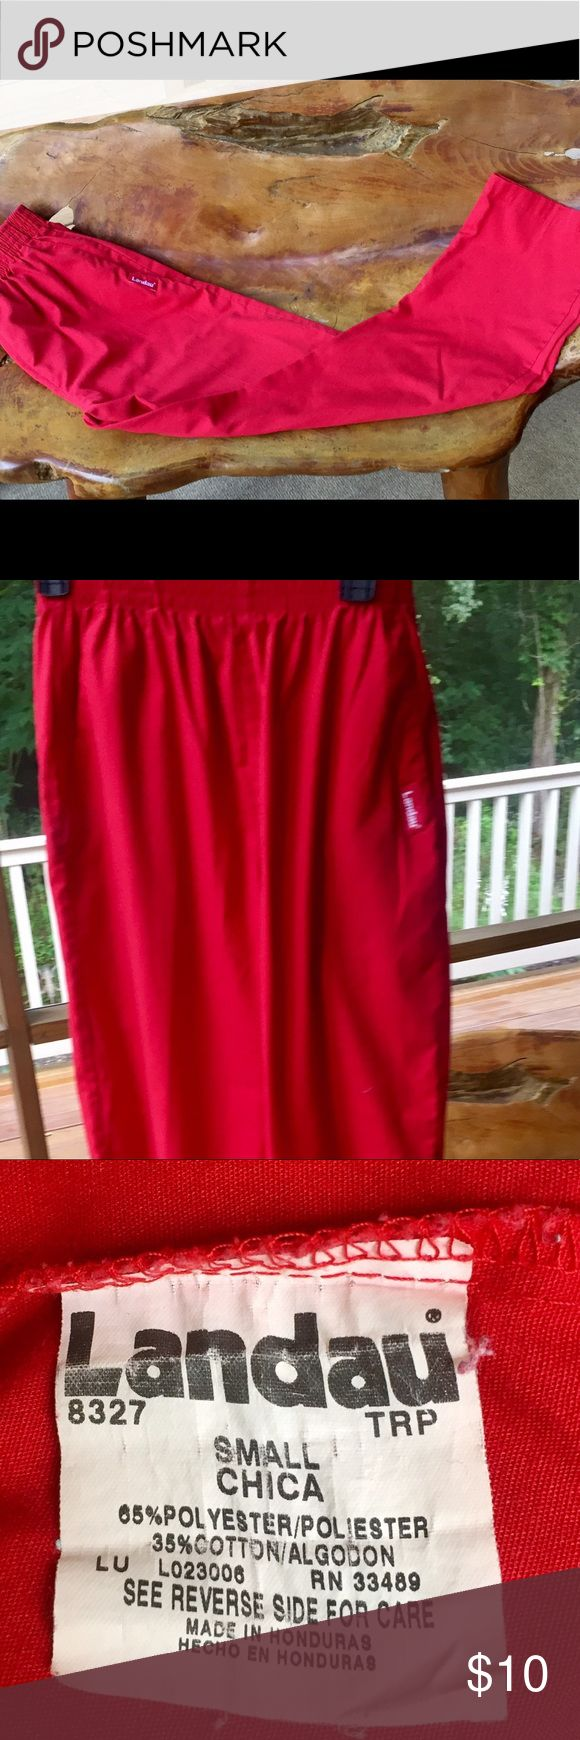 "Bright Red LANDAU Scrub Pants • size SMALL This is a great pair of red scrub pants by LANDAU.  These are size SMALL.  They have a wide elastic waistband and two front slash pockets.  The inseam measures 28"" and the leg opening measures 8"".  These are 55% polyester and 35% cotton.  No issues noted. SMOKE FREE HOME. I love to BUNDLE! Landau Pants"